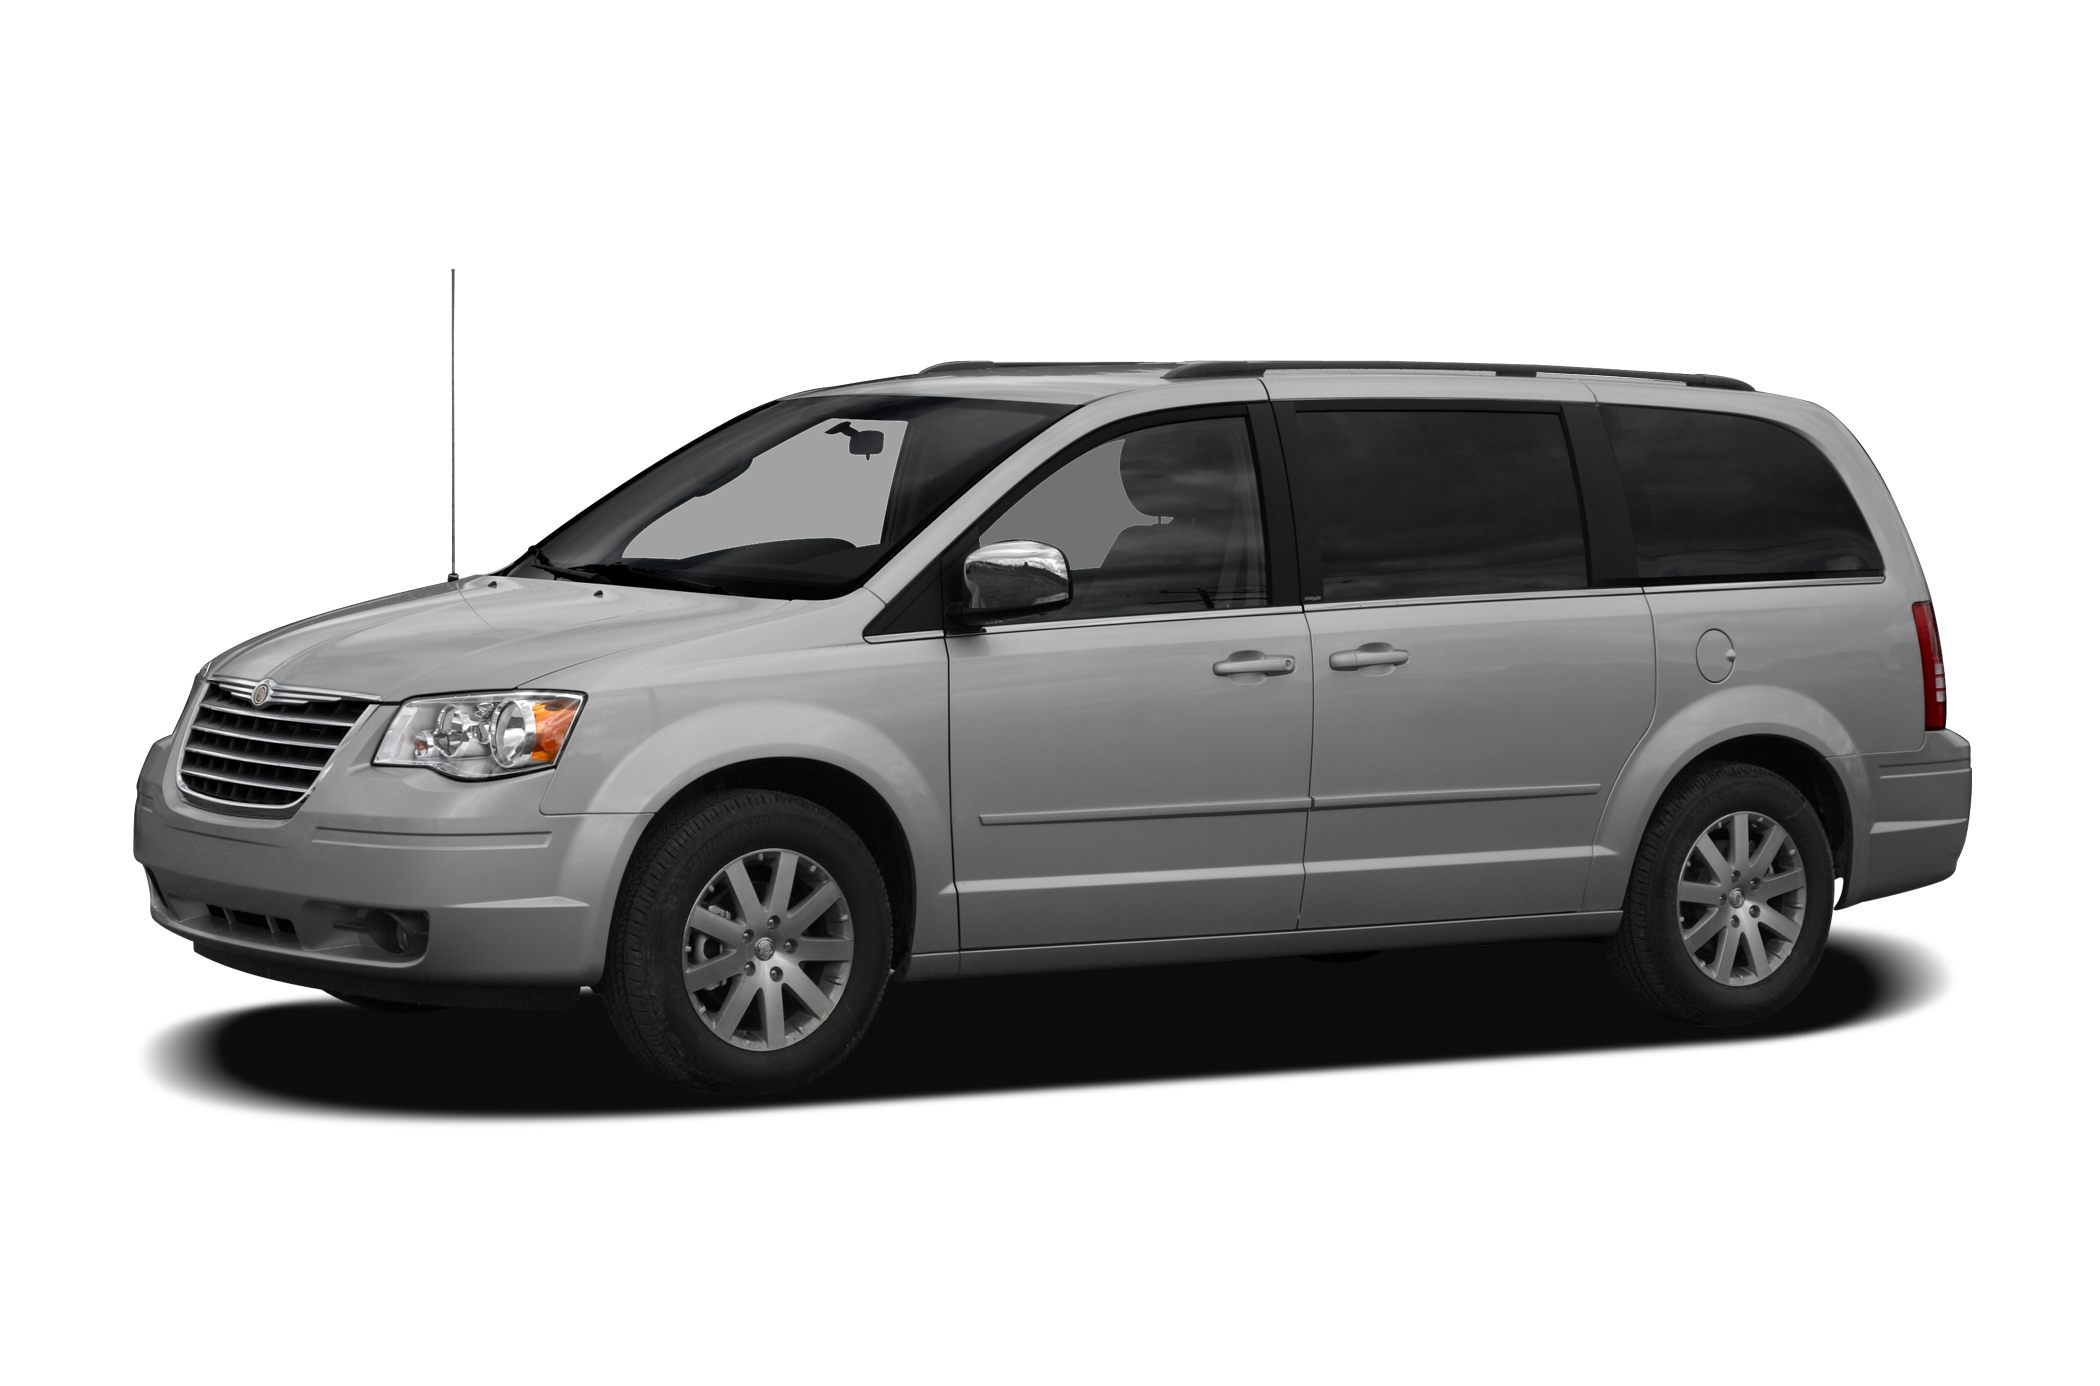 2010 Chrysler Town & Country Limited Minivan for sale in Fredericksburg for $22,998 with 25,399 miles.